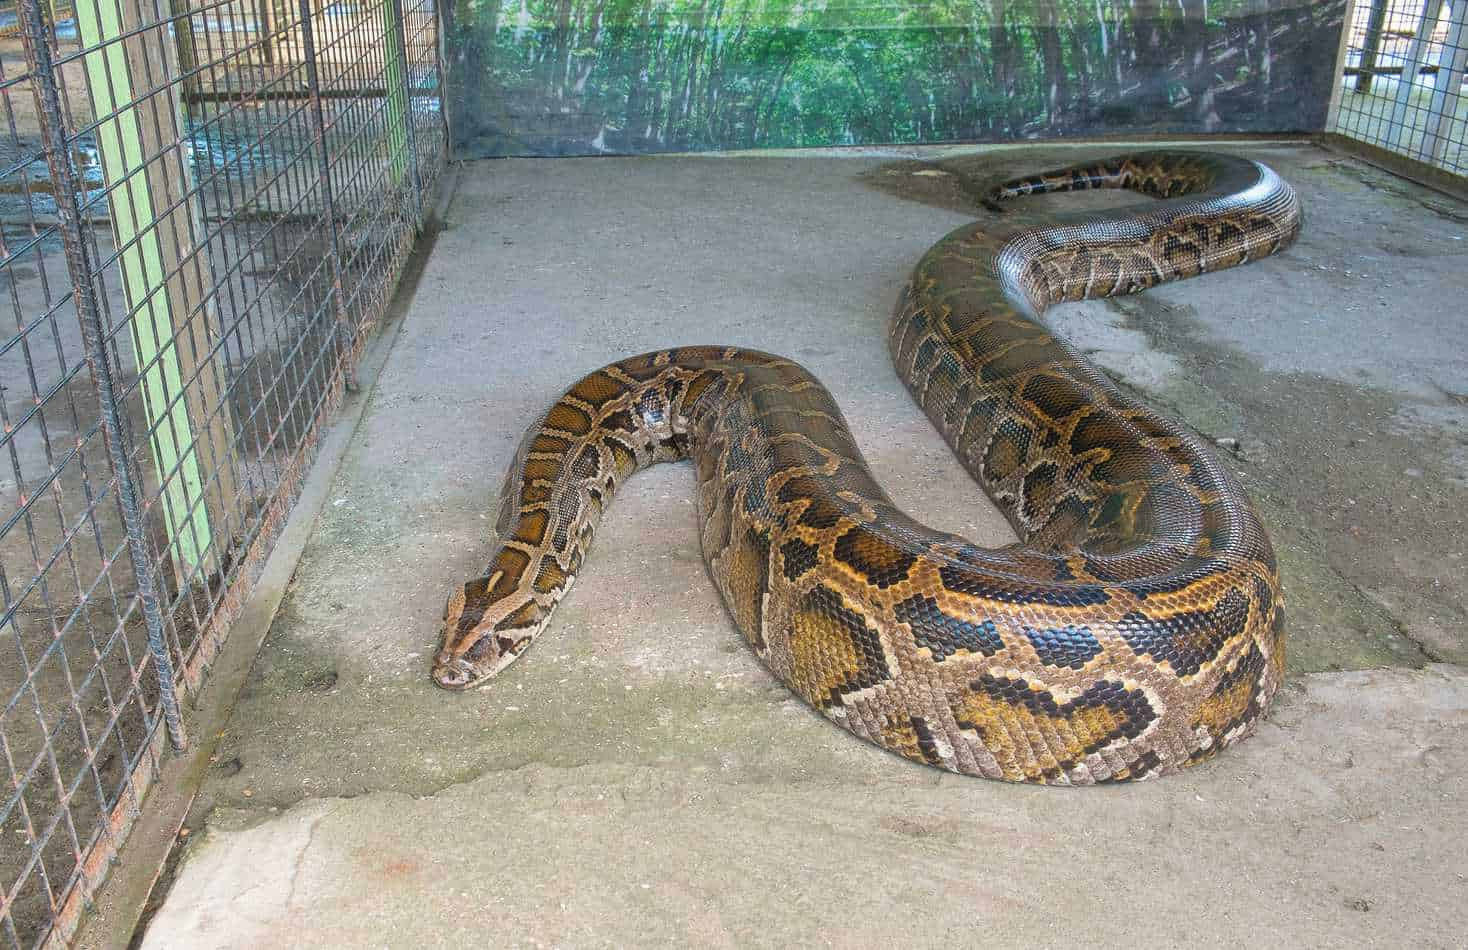 Reticulated Python Bites: A Guide with Pictures and Facts